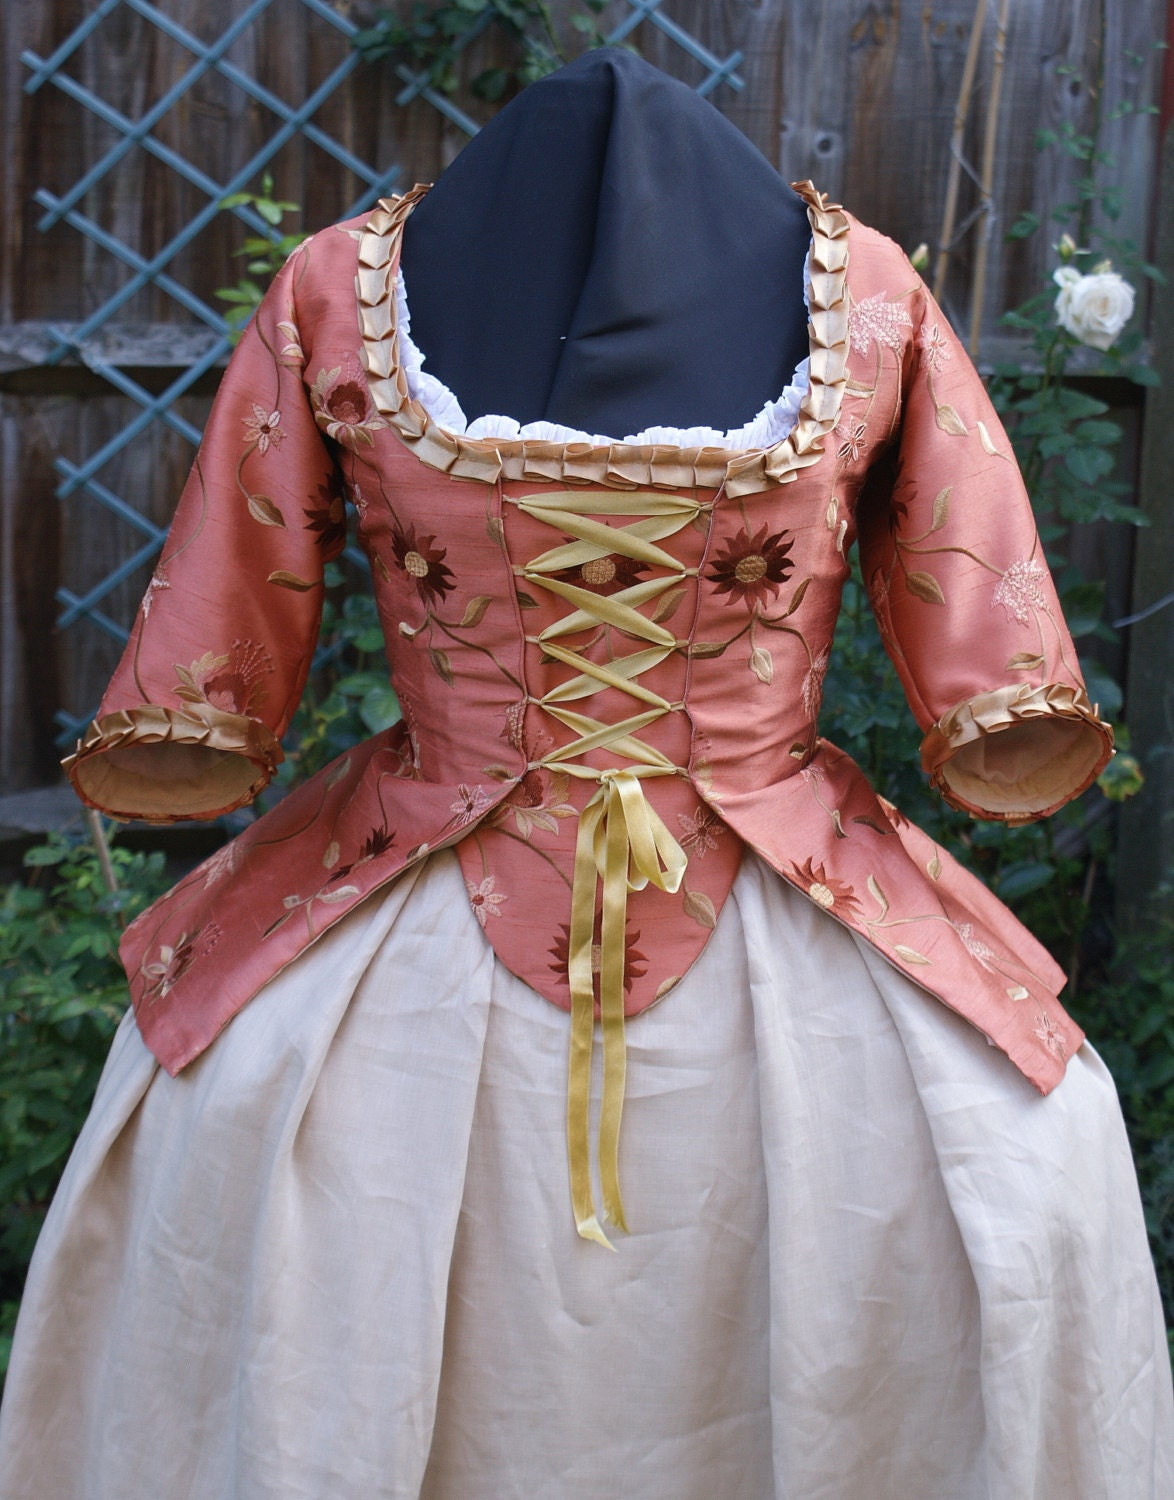 Christmas gown ideas 18th - 18th Century Marie Antoinette Embroidered Faux Silk Caraco Jacket Custom Period Rococo Clothing Historical Costume Party